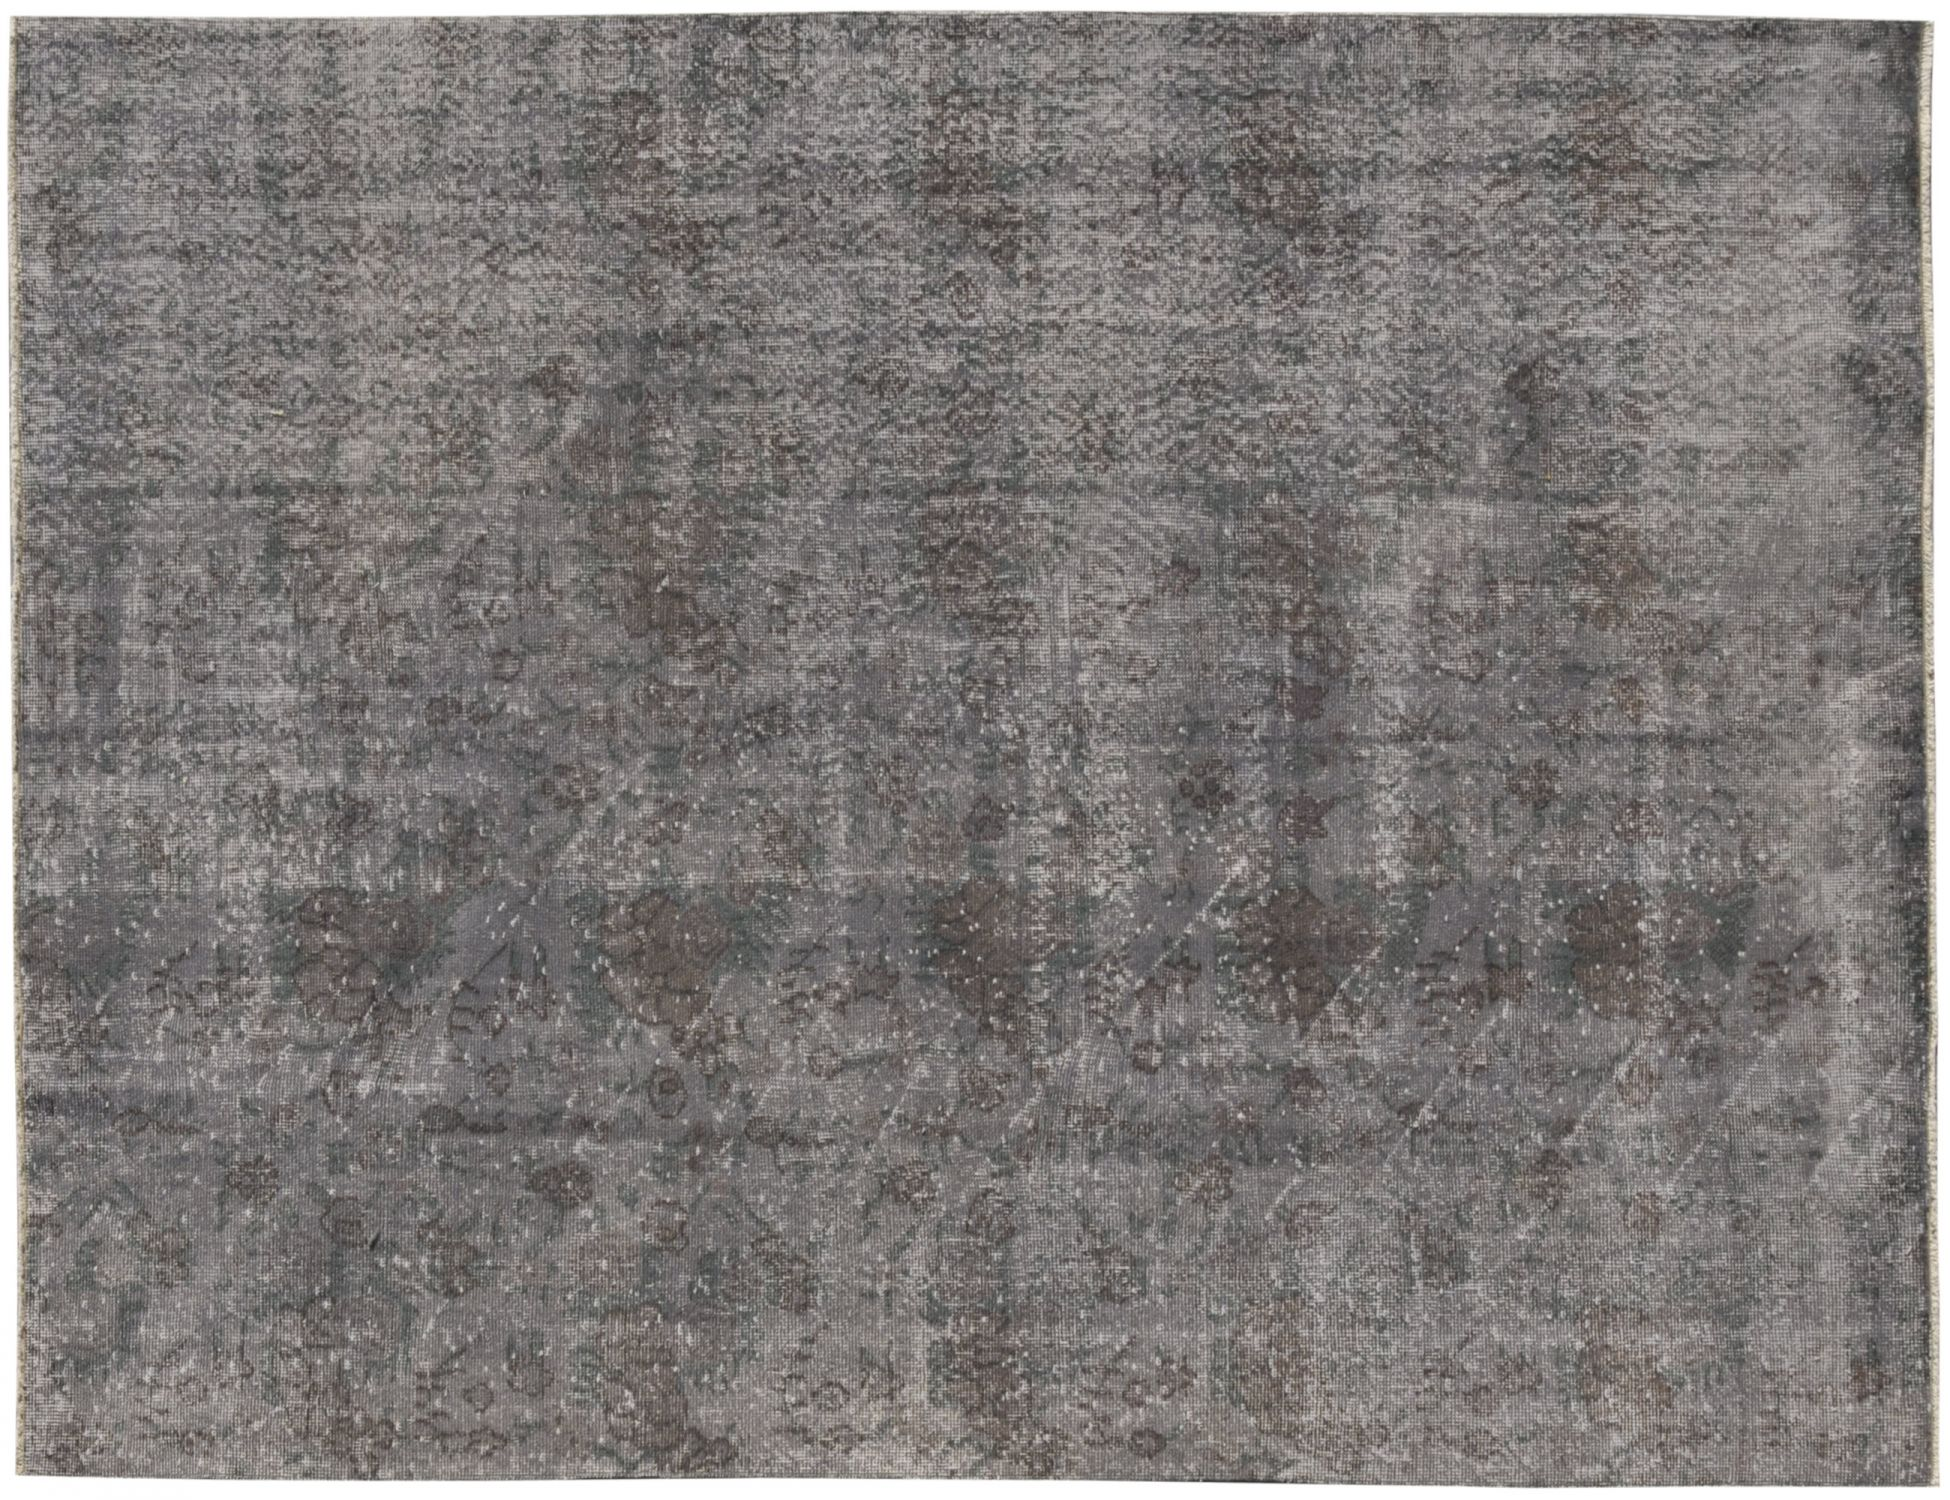 Vintage Carpet  grey <br/>263 x 175 cm